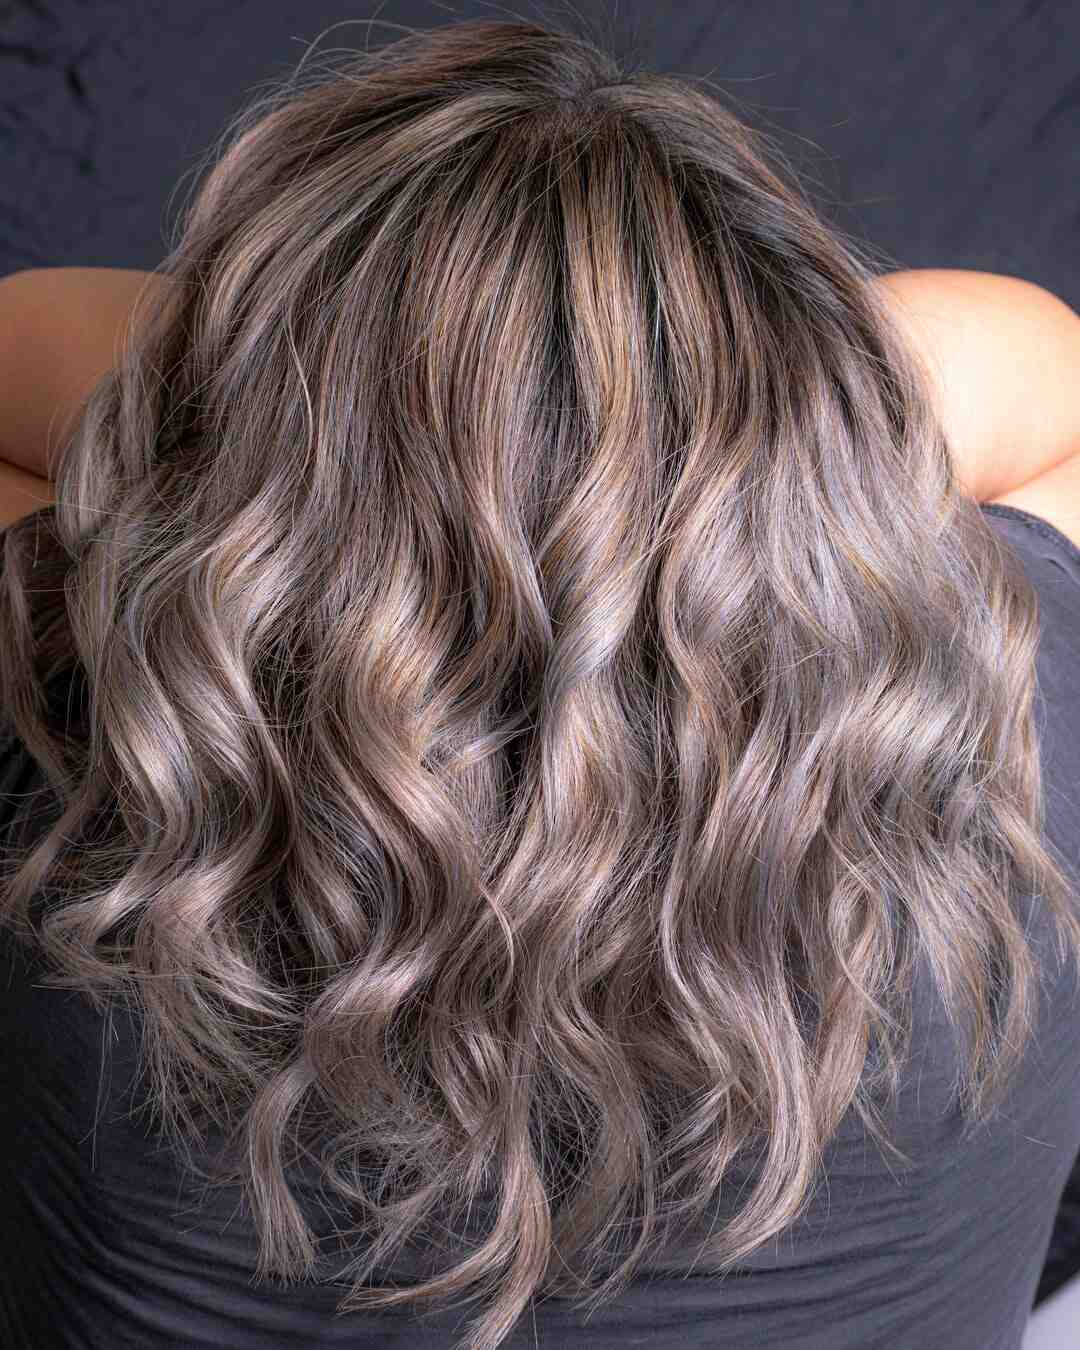 How to take care hair extensions